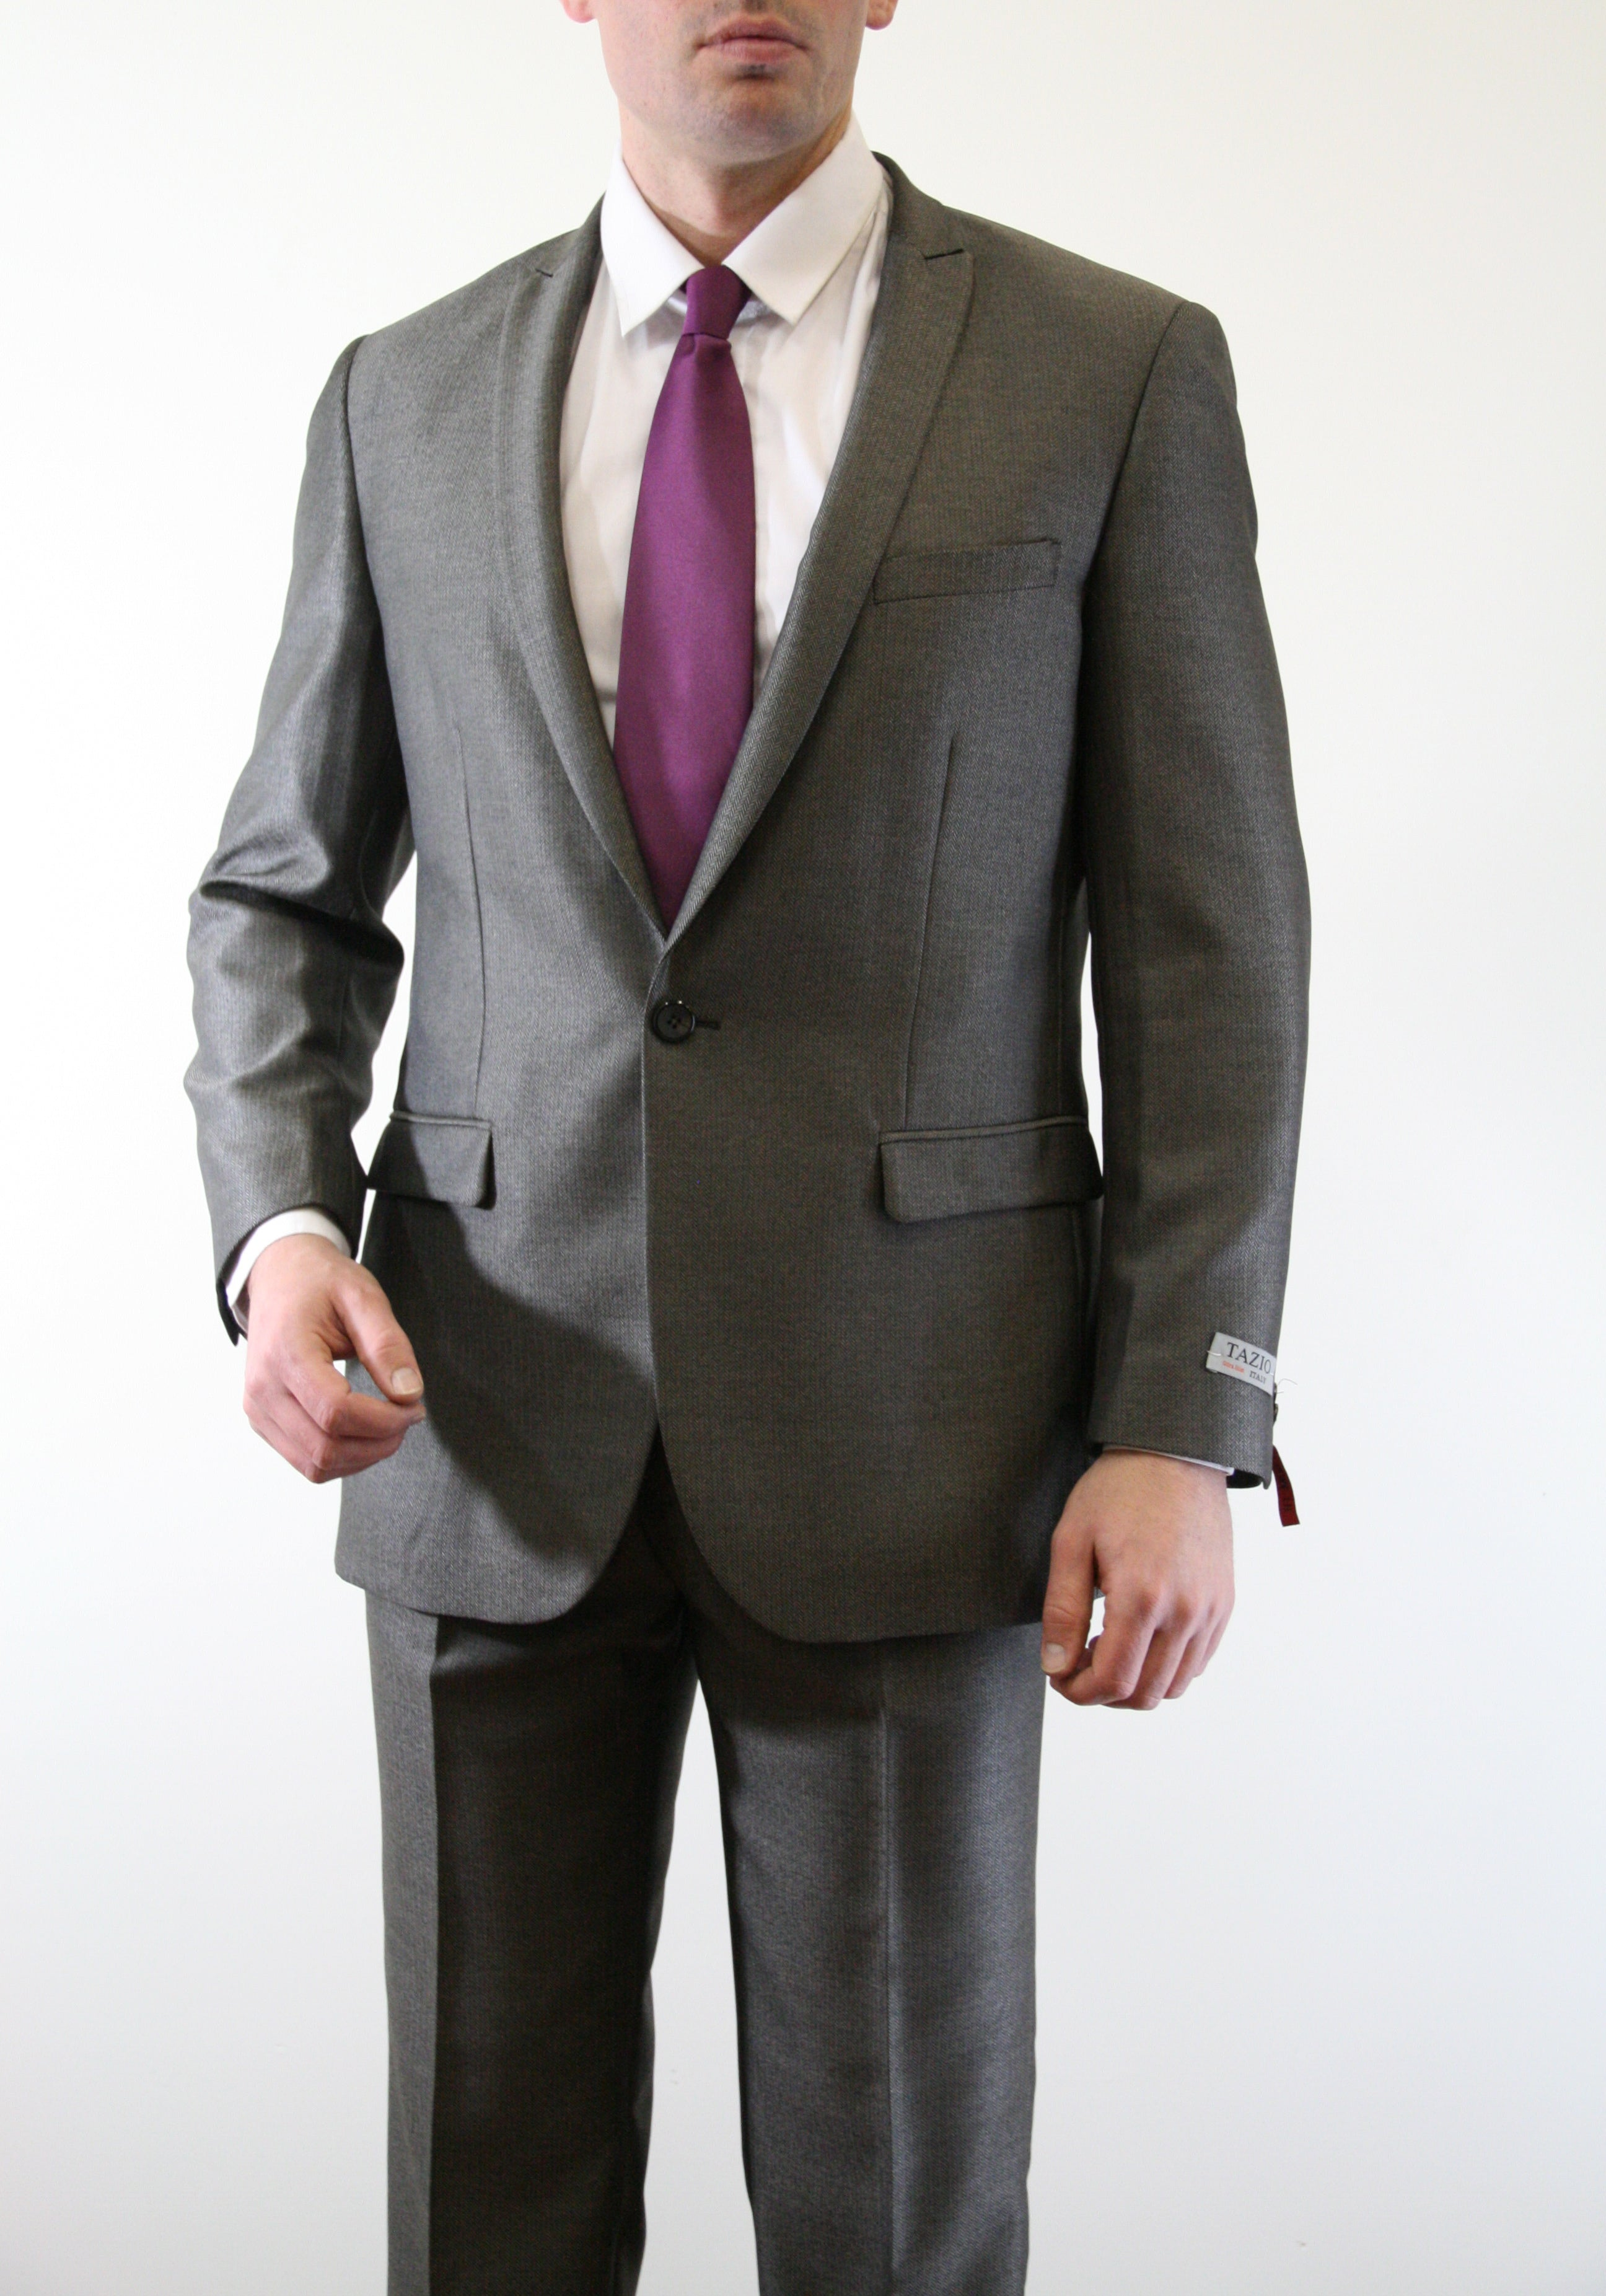 Slate Suit For Men Formal Suits For All Ocassions M192S-05